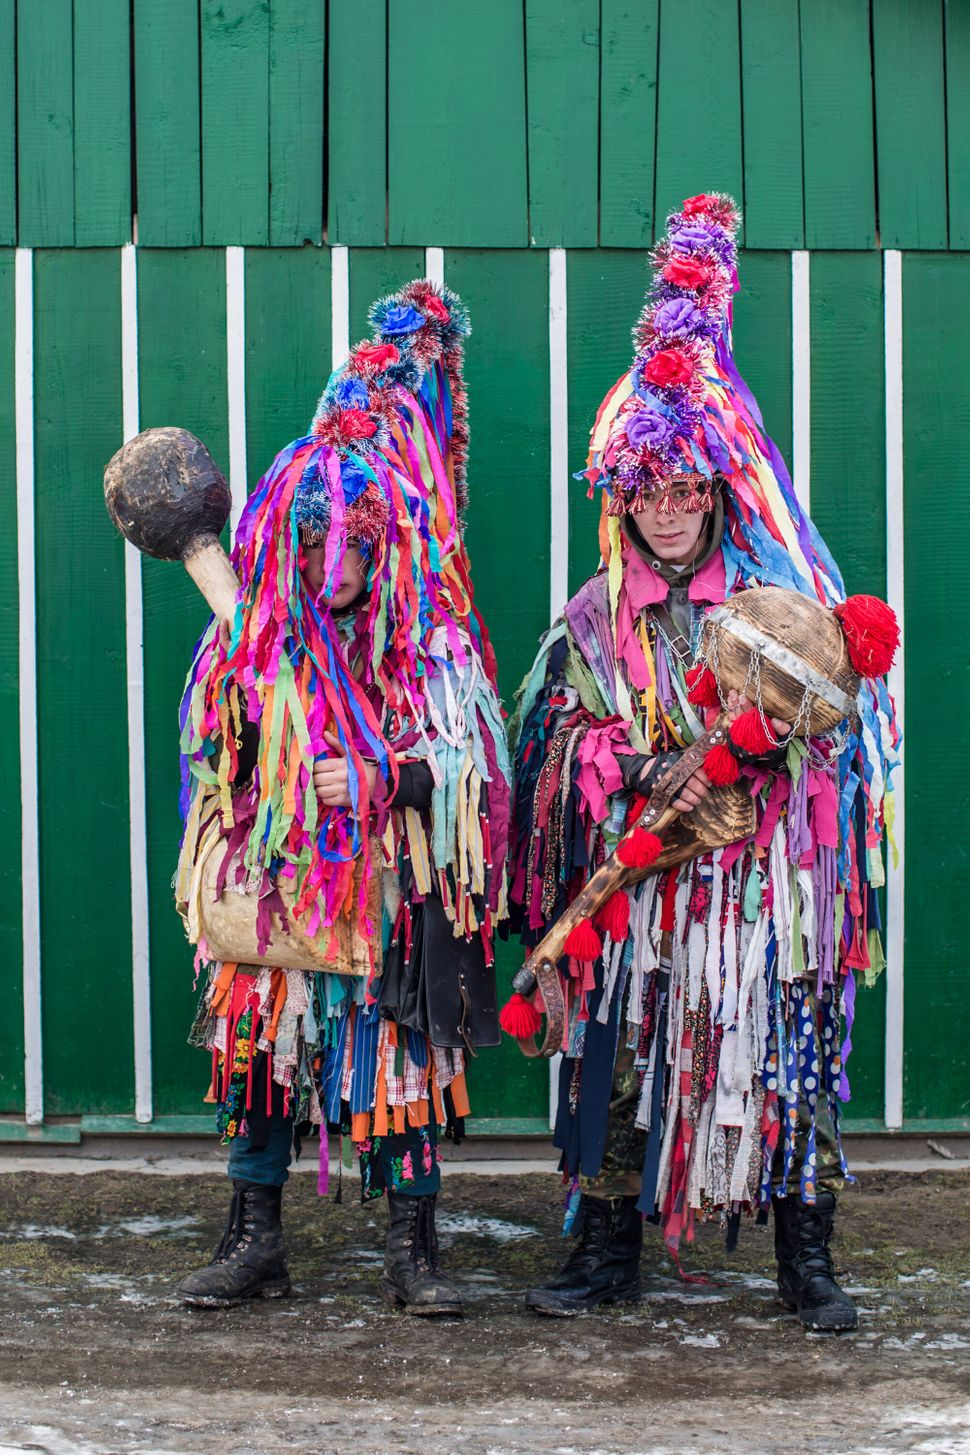 Villagers dressed in costumes as they celebrate the winter festival of Malanka pose for a portrait on January 14, 2015 in Kra